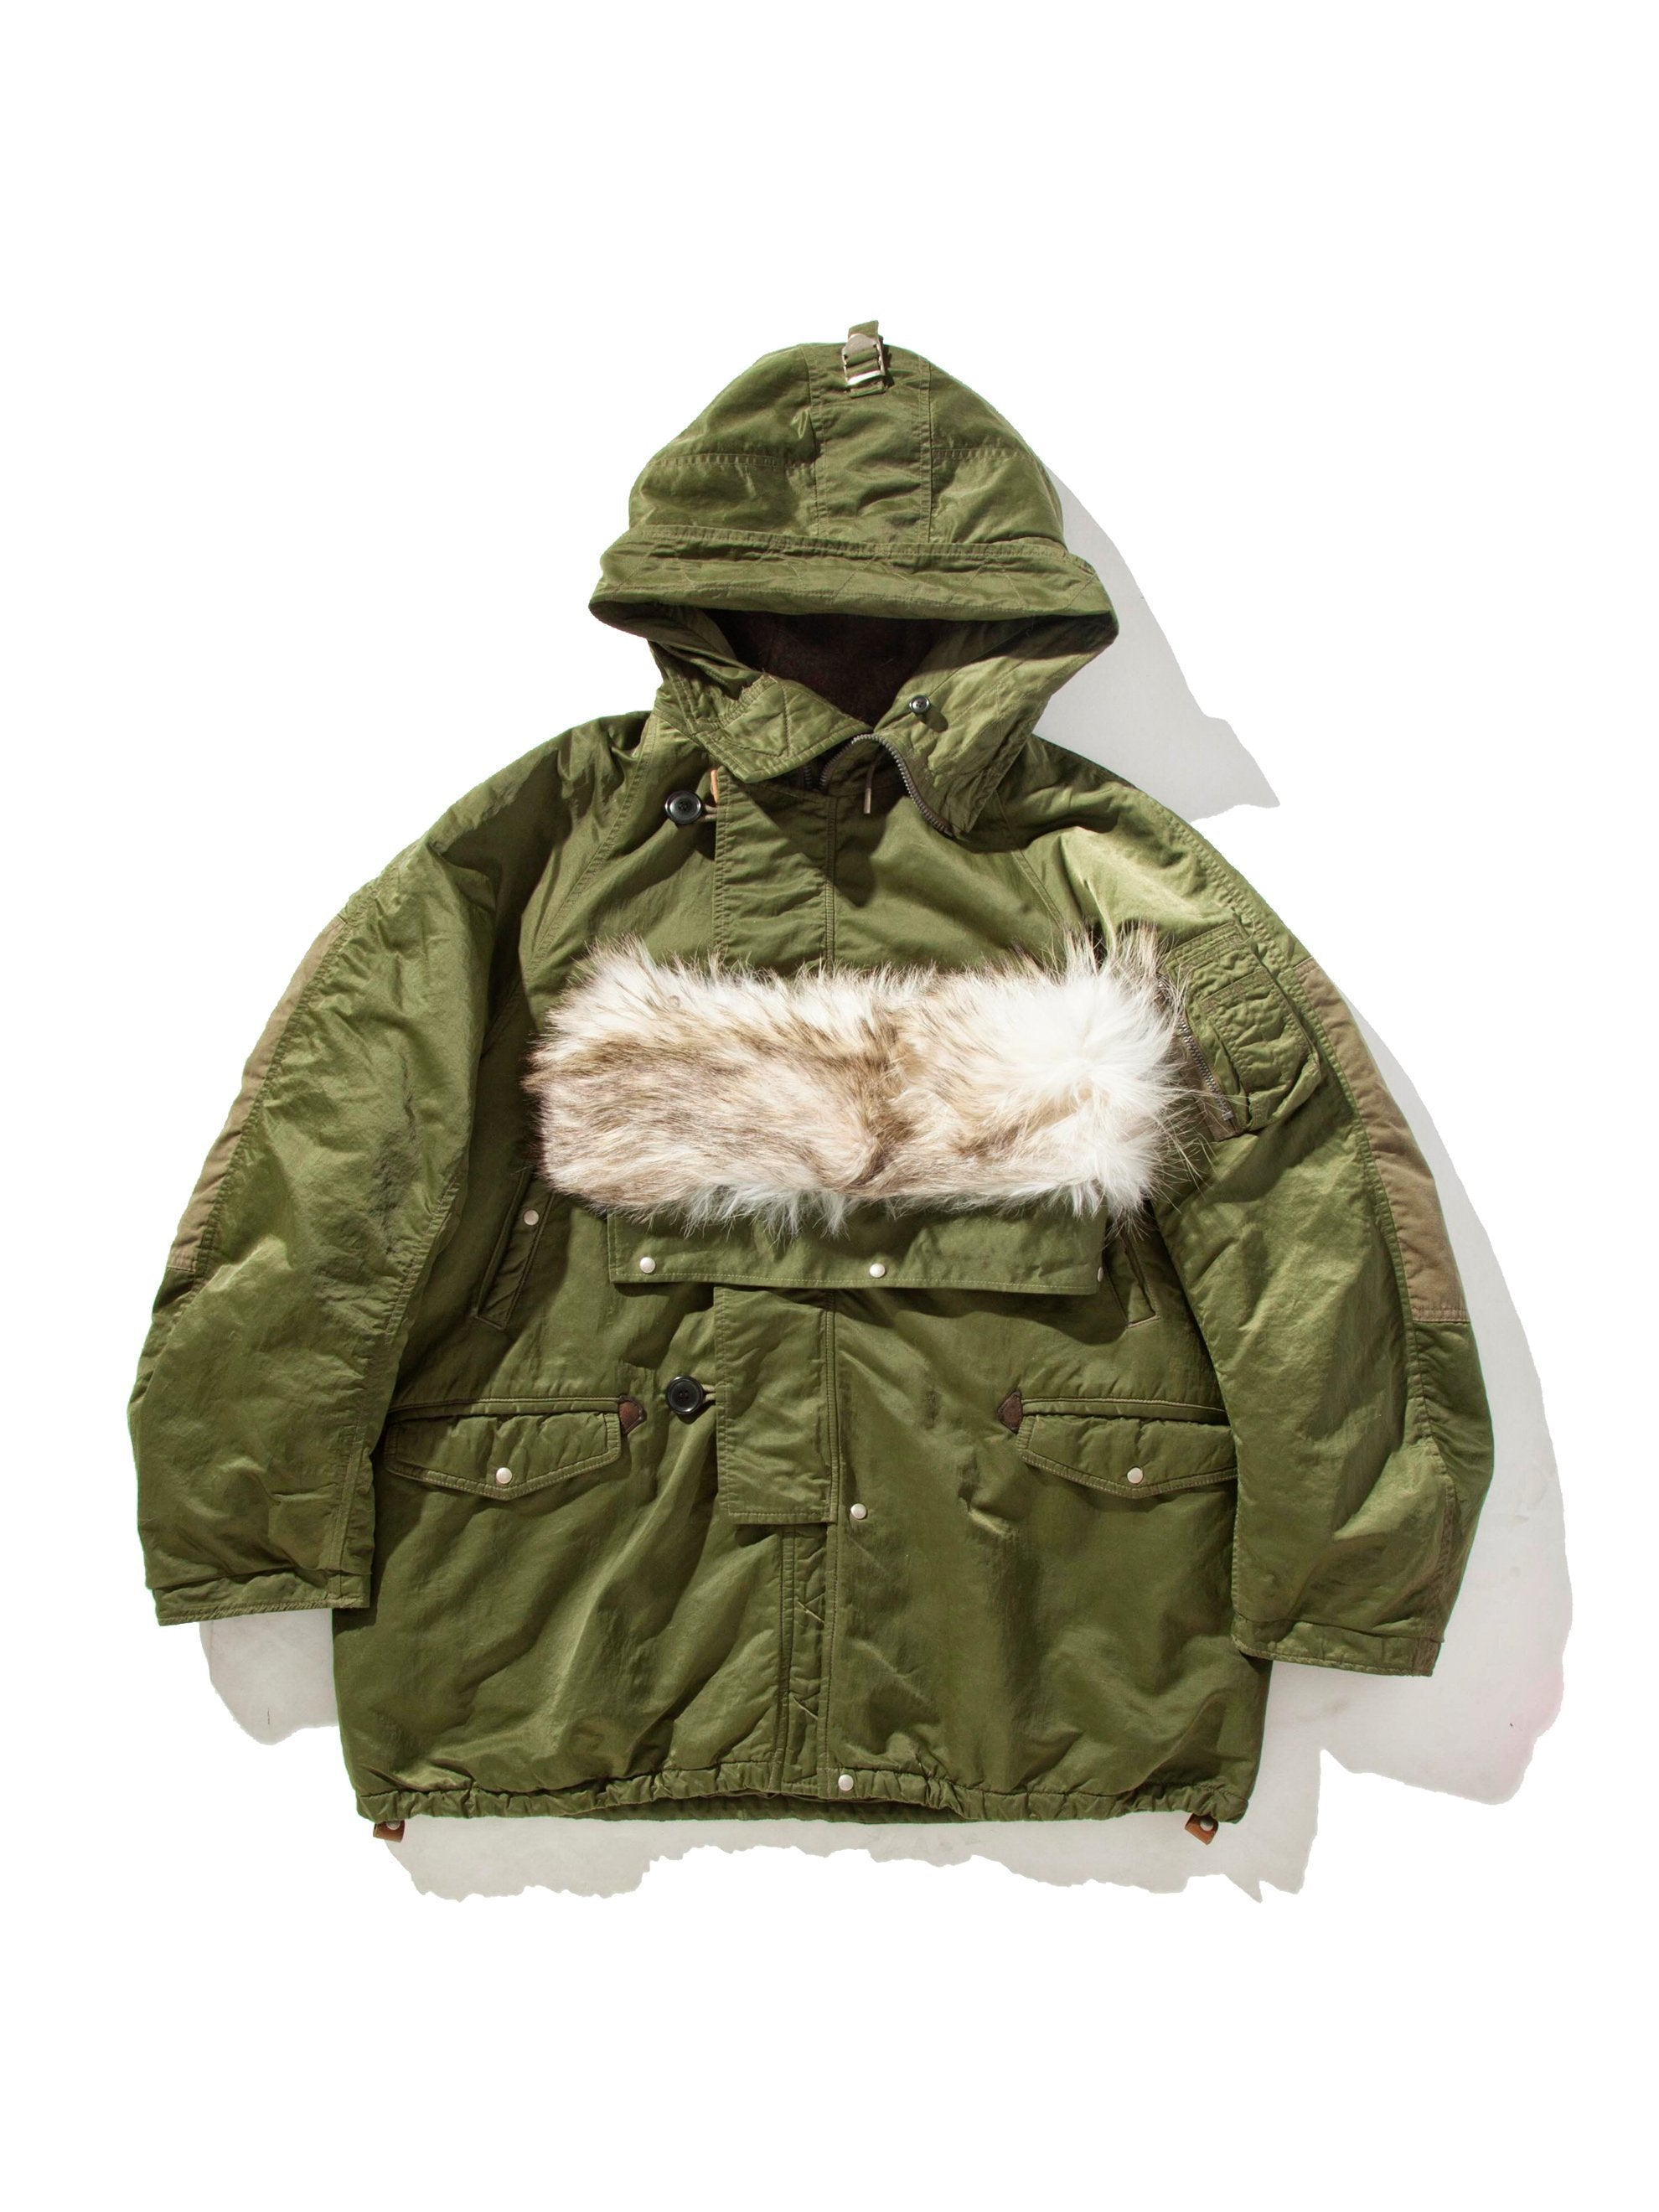 Green Valdez Coat (Wool Pile) 8